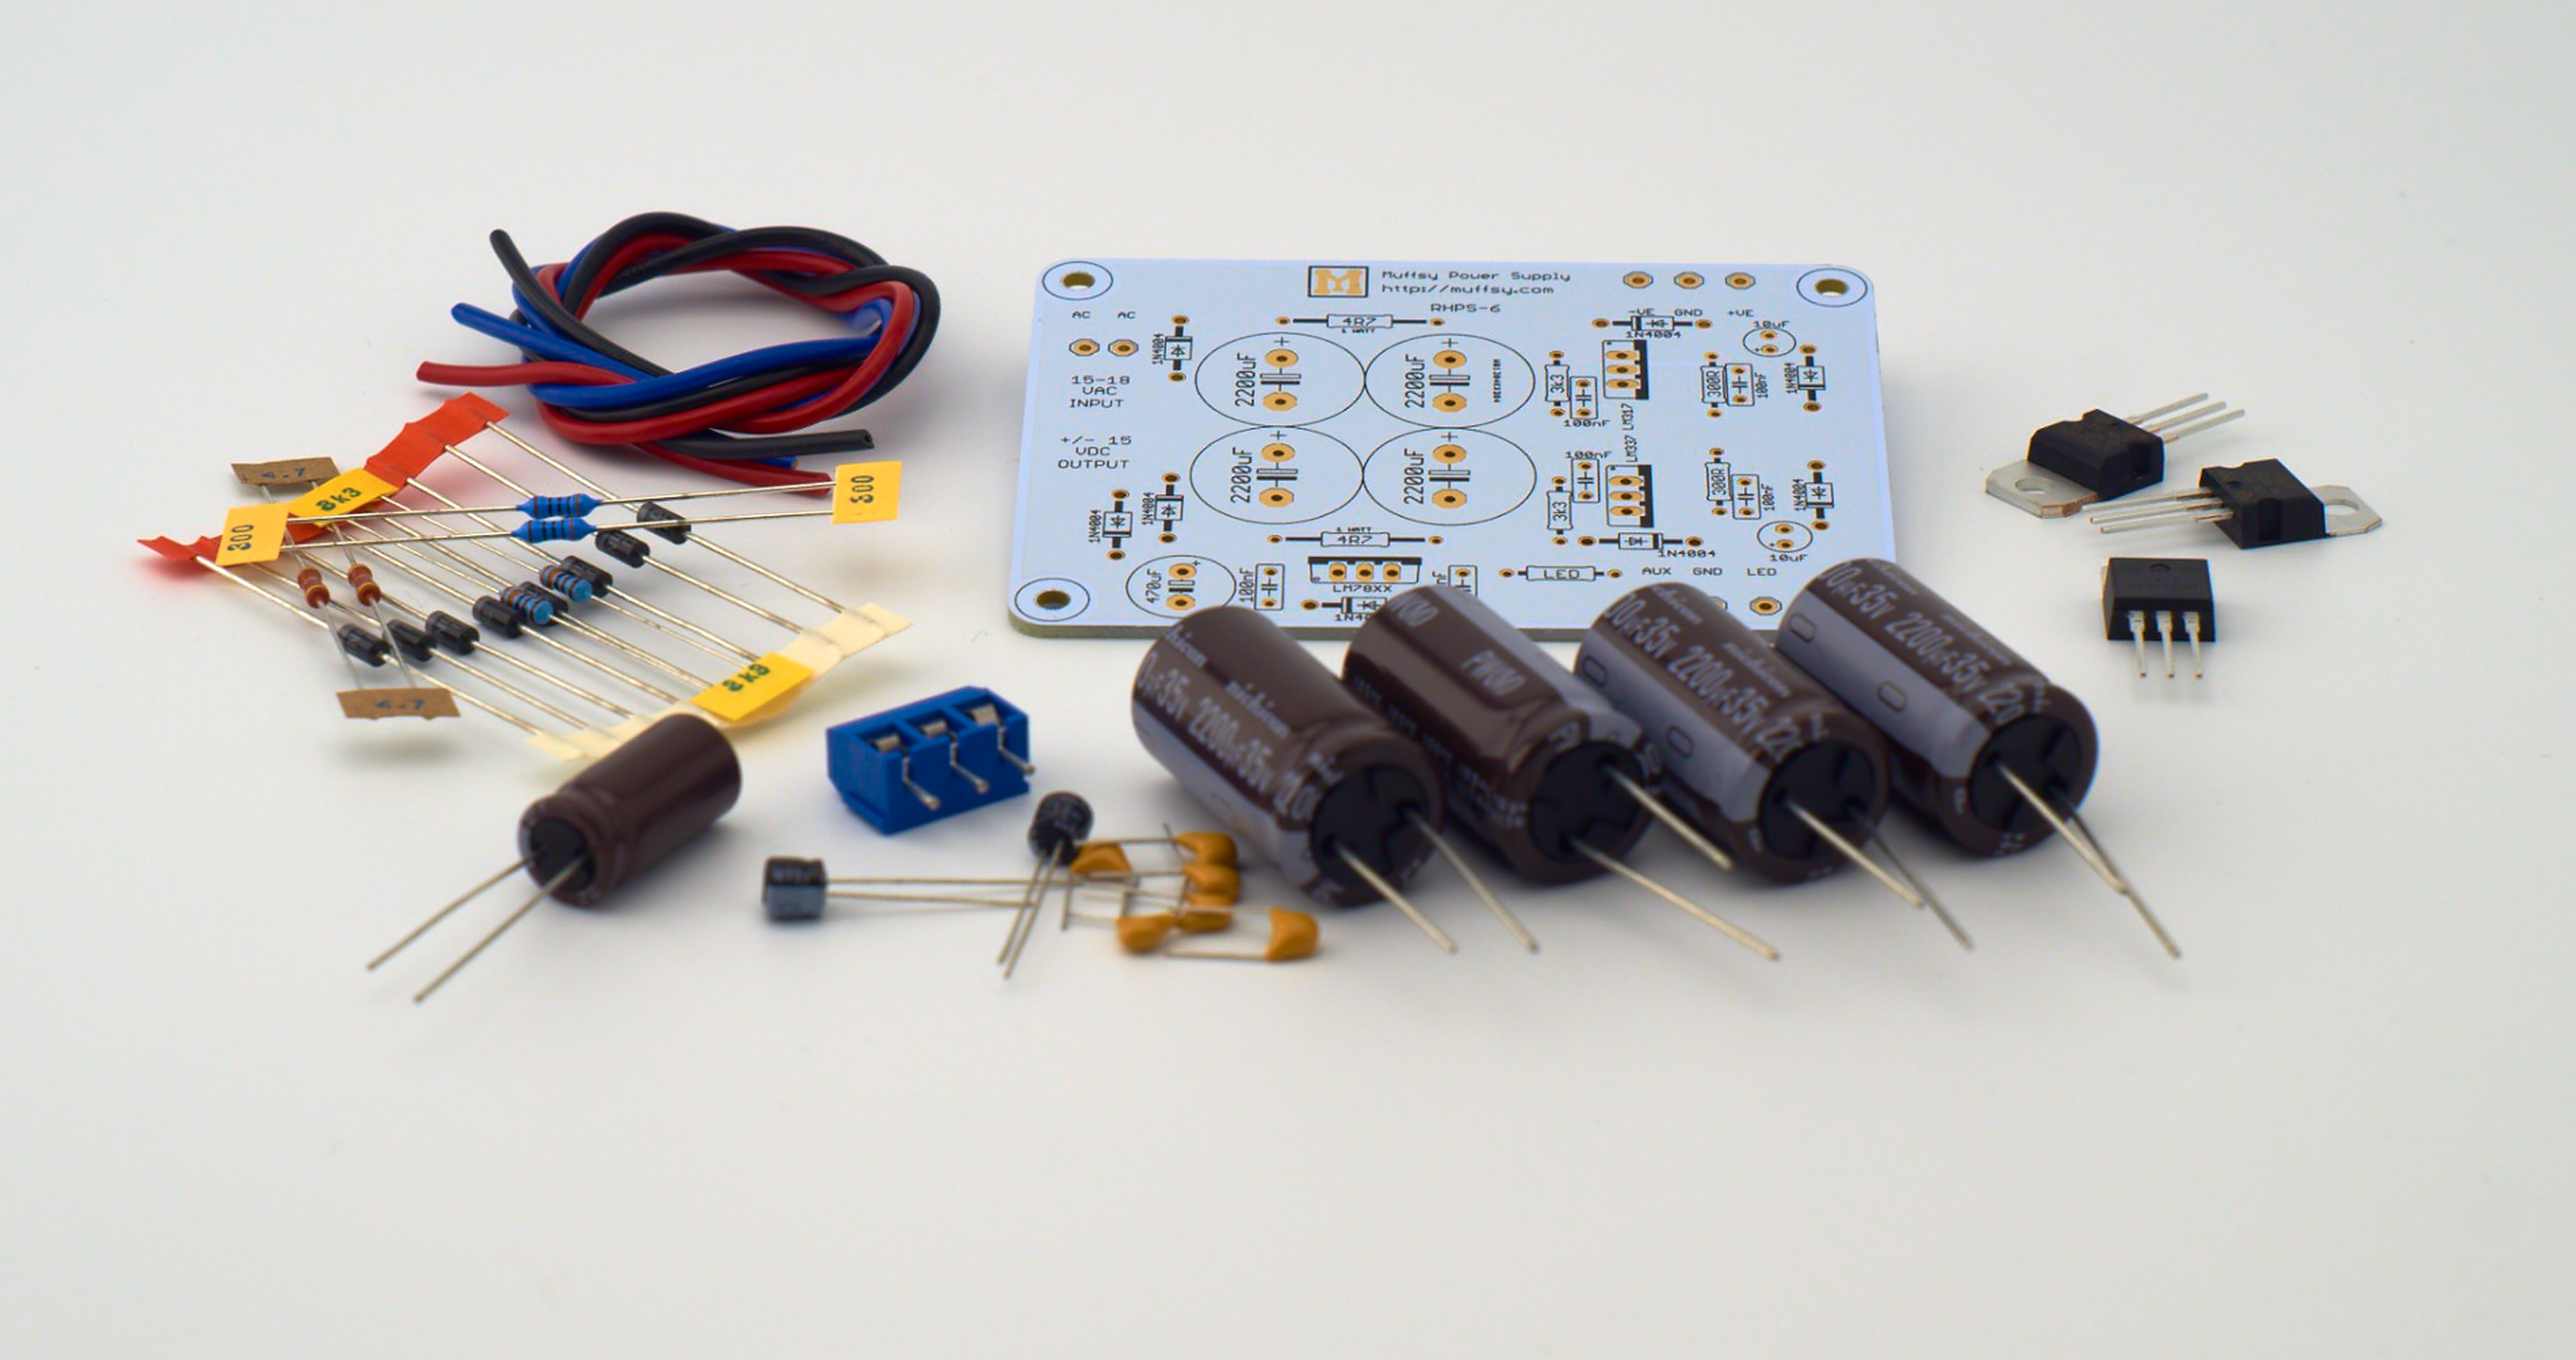 Muffsy Hifi Dual Power Supply V4 Kit From On Tindie Amp Wiring With Capacitor 2